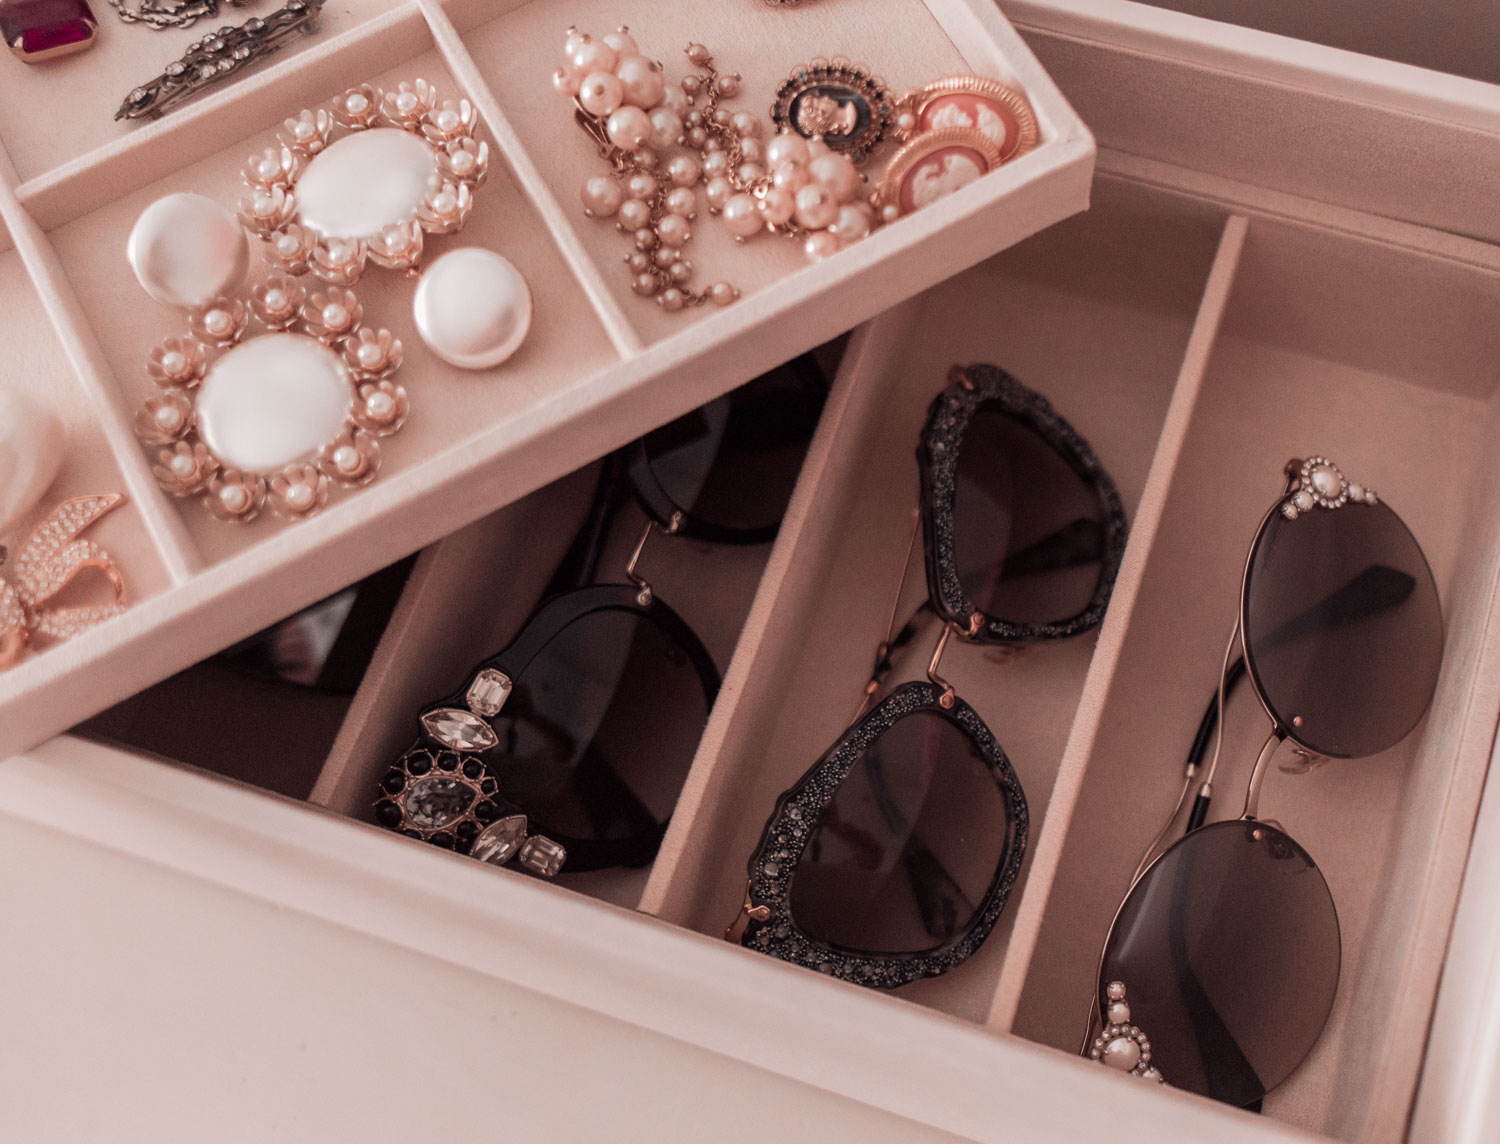 Feminine Fashion Blogger Elizabeth Hugen of Lizzie in Lace shares 4 incredible jewelry box options from WOLF 1834 along with tips on how to organize and store your jewelry collection